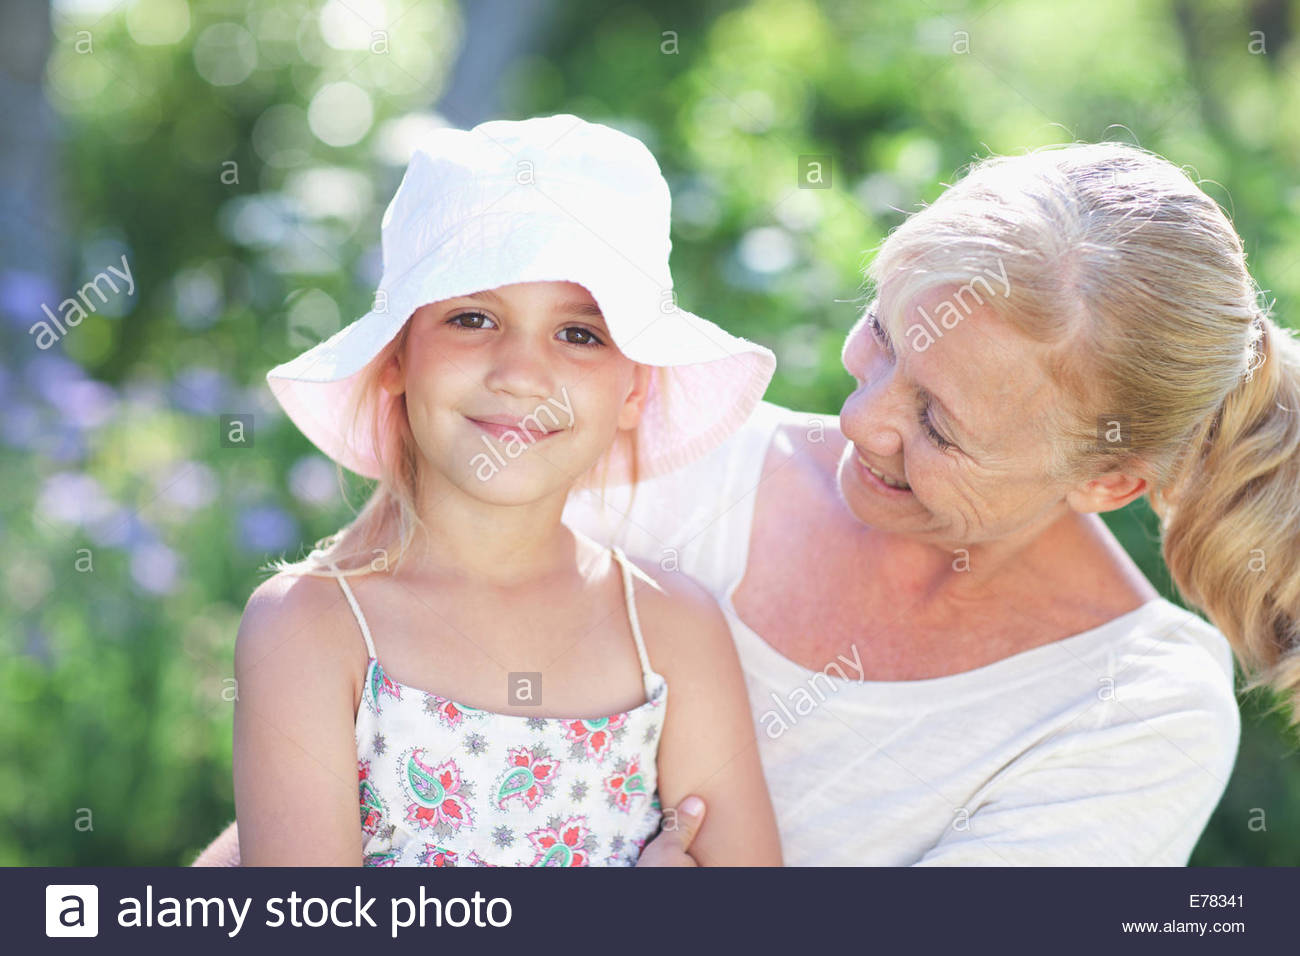 Grandmother and granddaughter outdoors - Stock Image